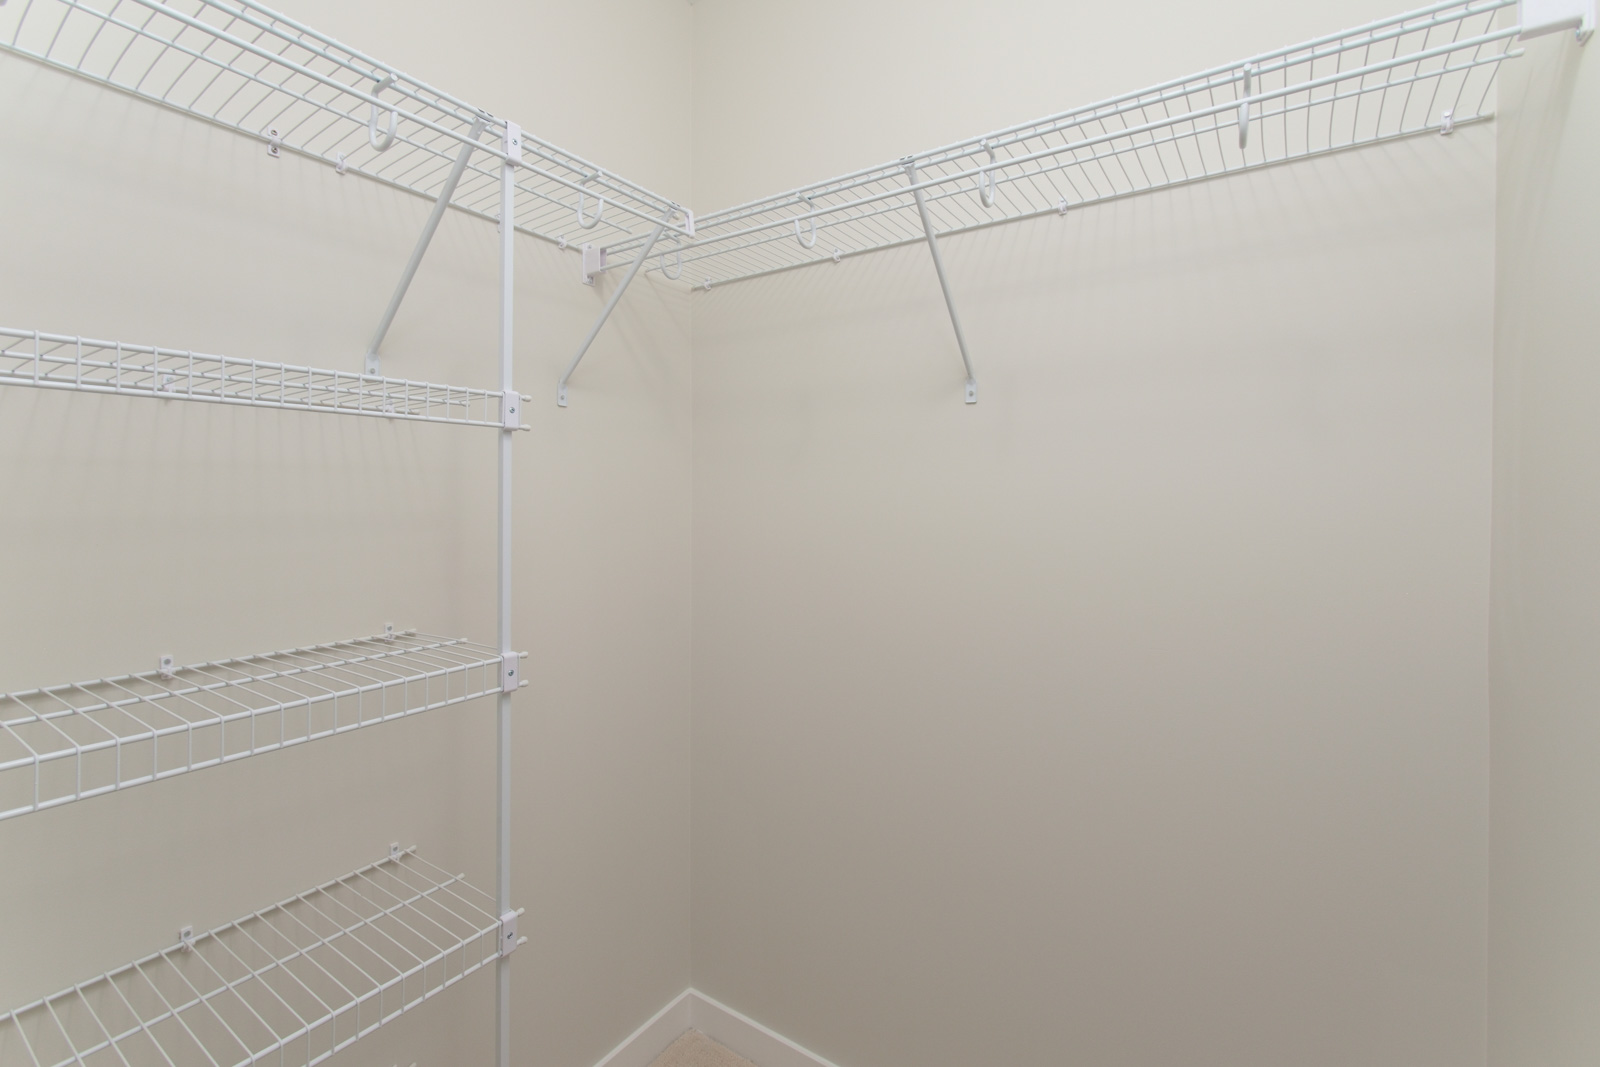 walk in closet with white wire rack shelving in rental condo apartment near garden city in richmond bc